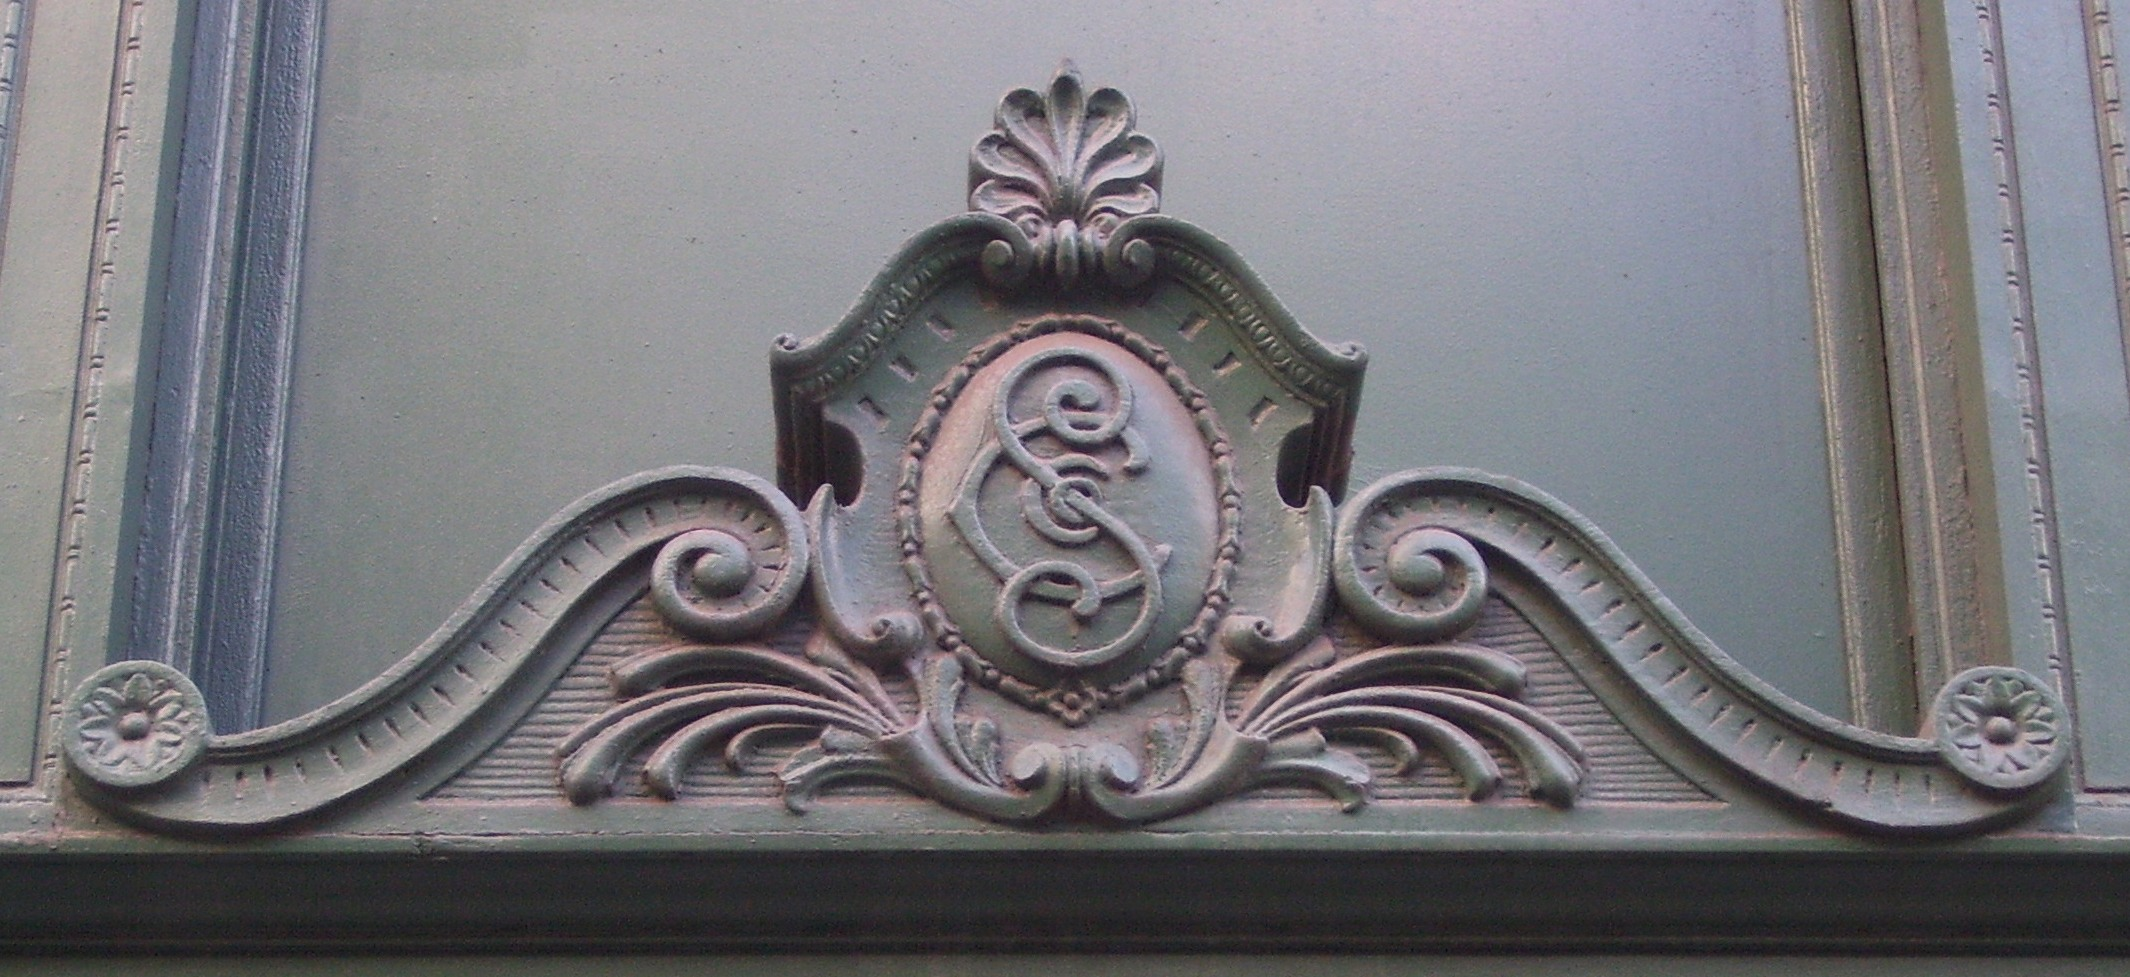 FileSiegel-Cooper door decoration.jpg & File:Siegel-Cooper door decoration.jpg - Wikimedia Commons